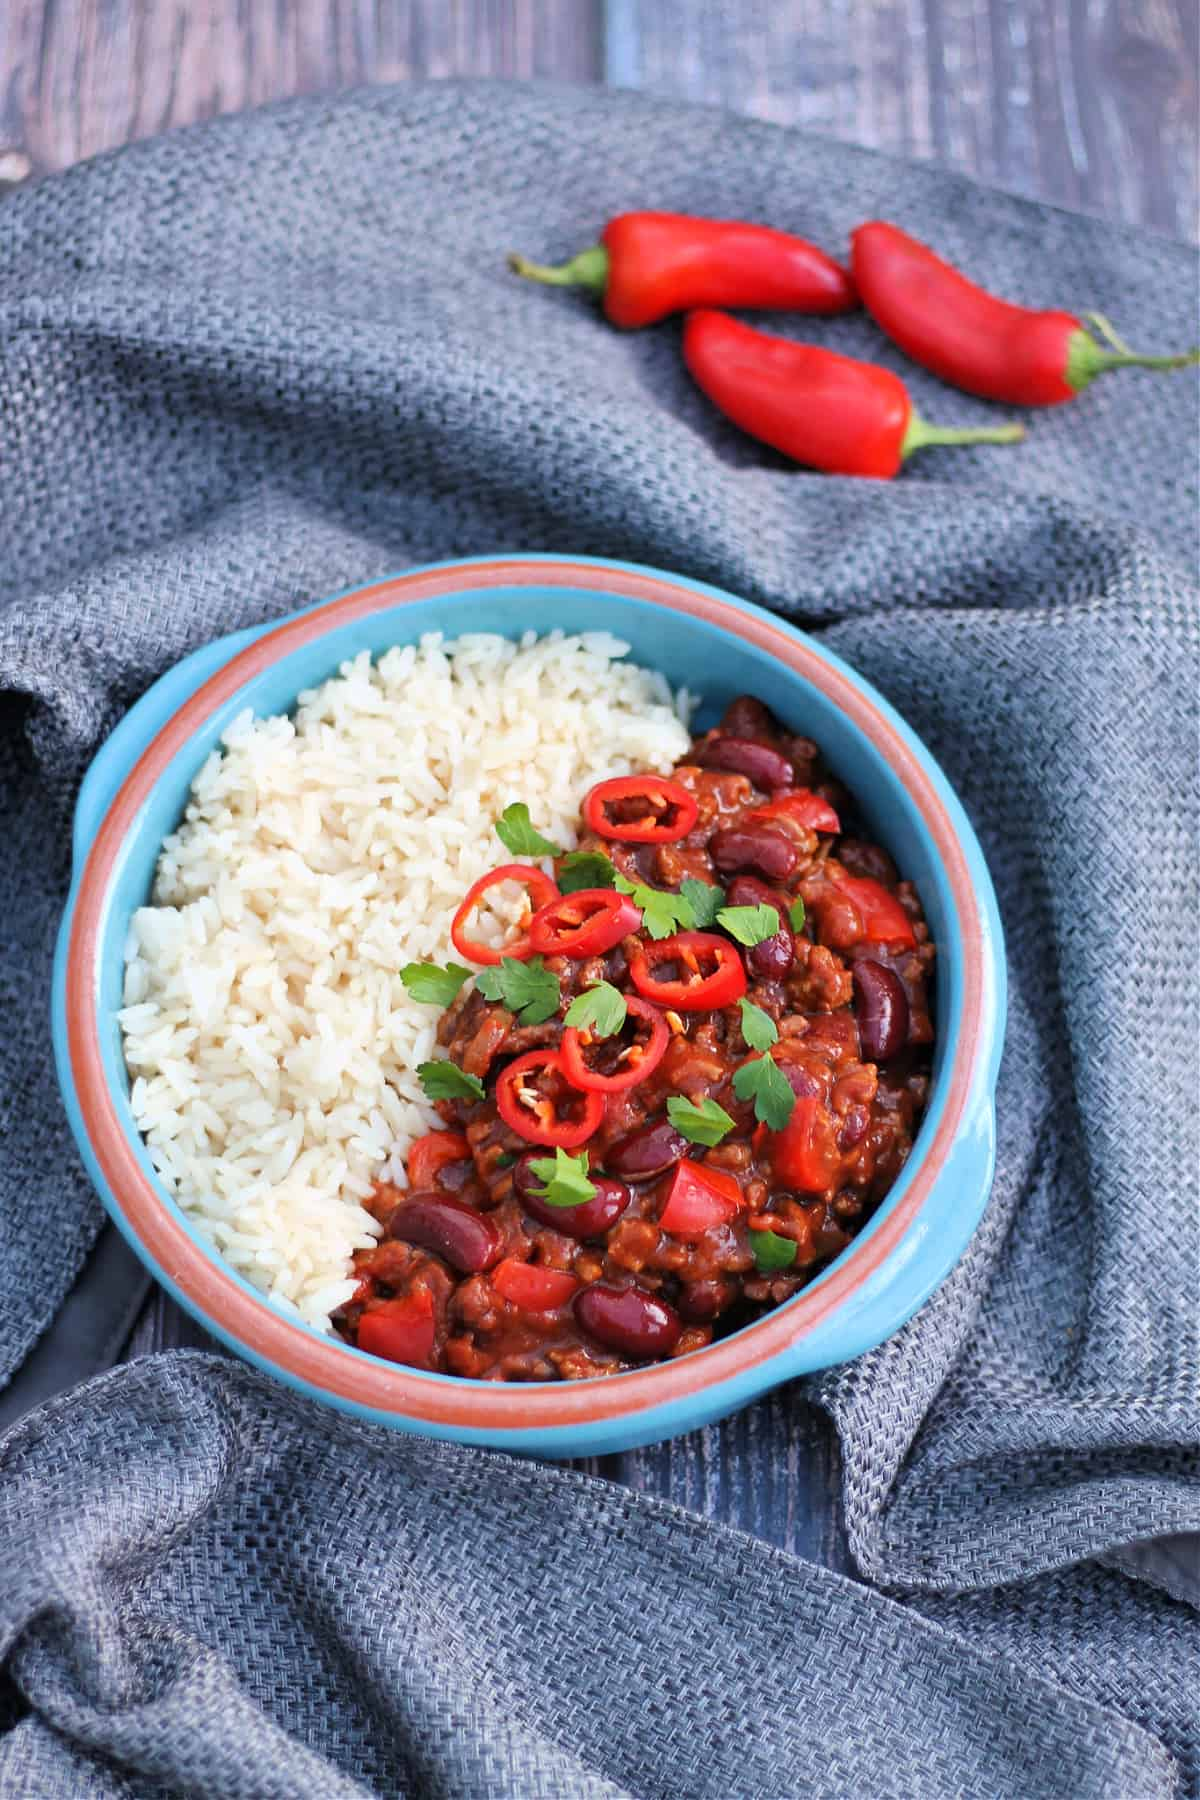 Bowl of chilli and rice with red chillis and herbs on top, on grey fabric background.